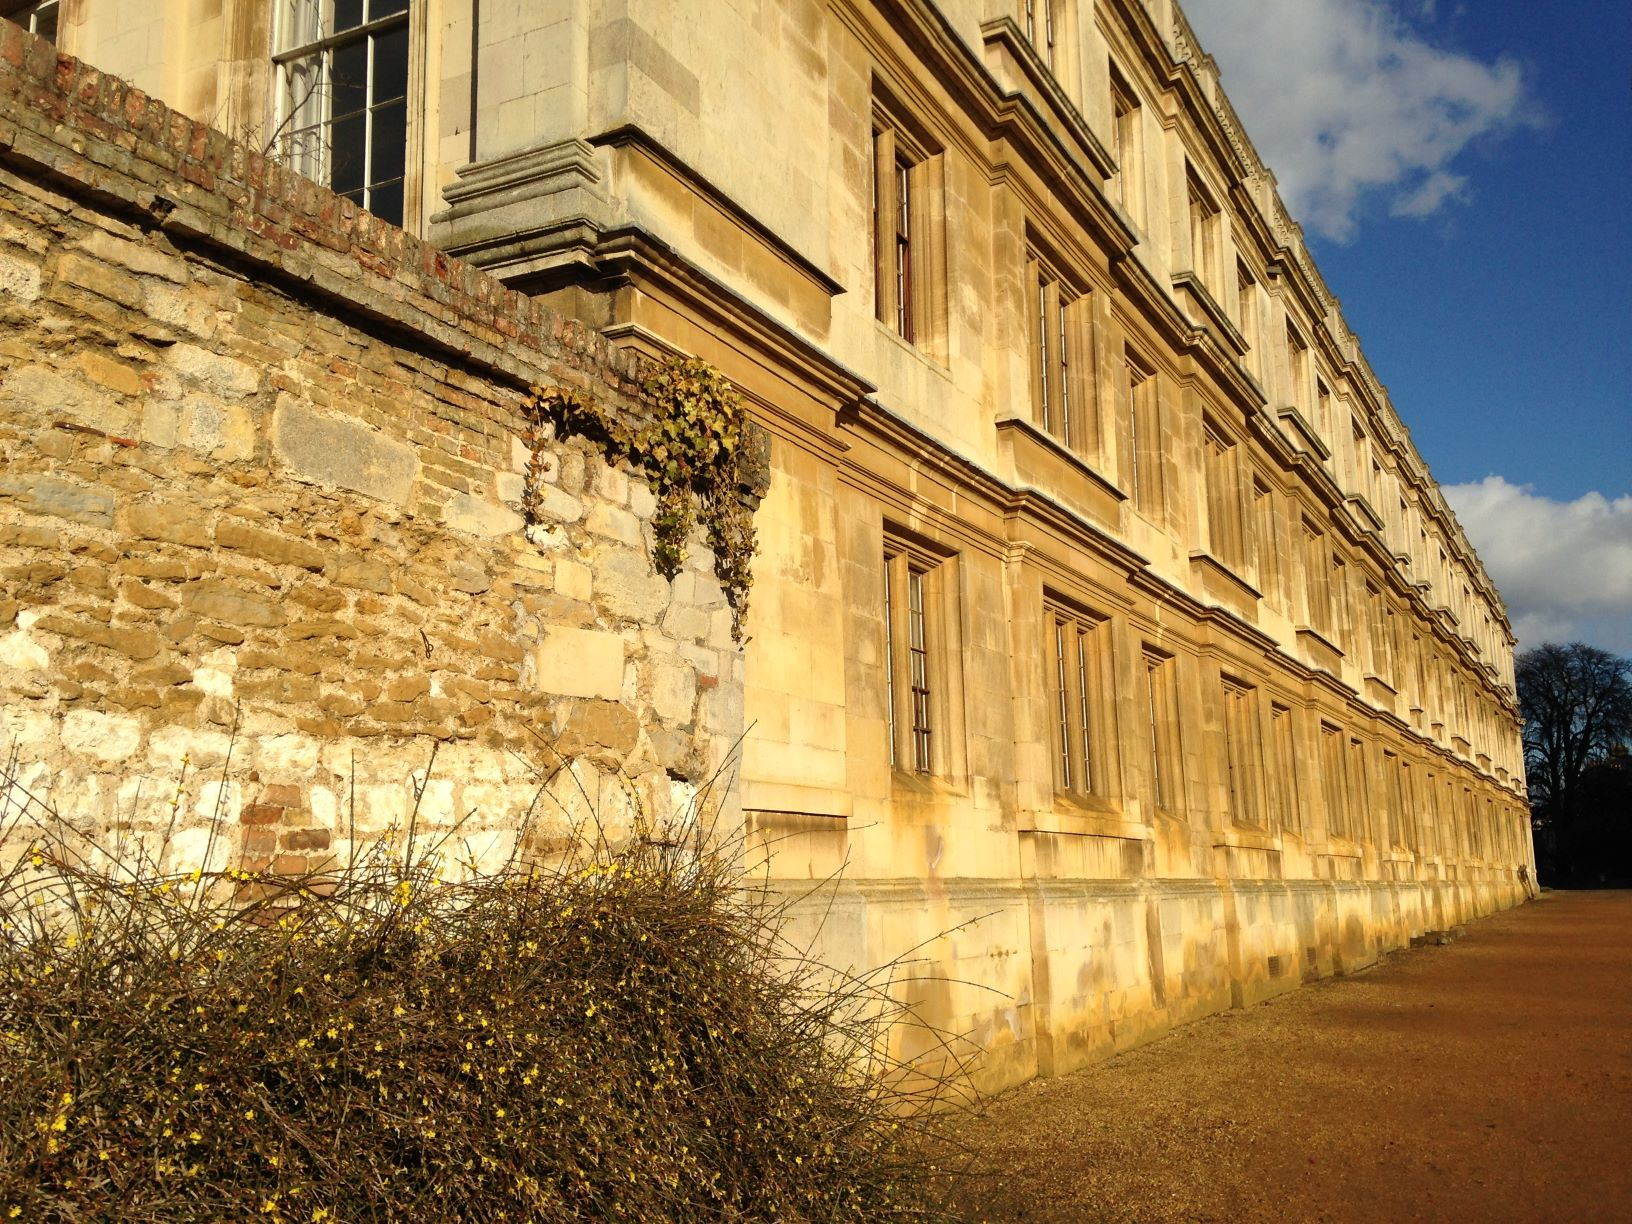 Image of Clare College Old Court bathed in afternoon sunlight, the Ketton limestone building stones are yellowy-beige